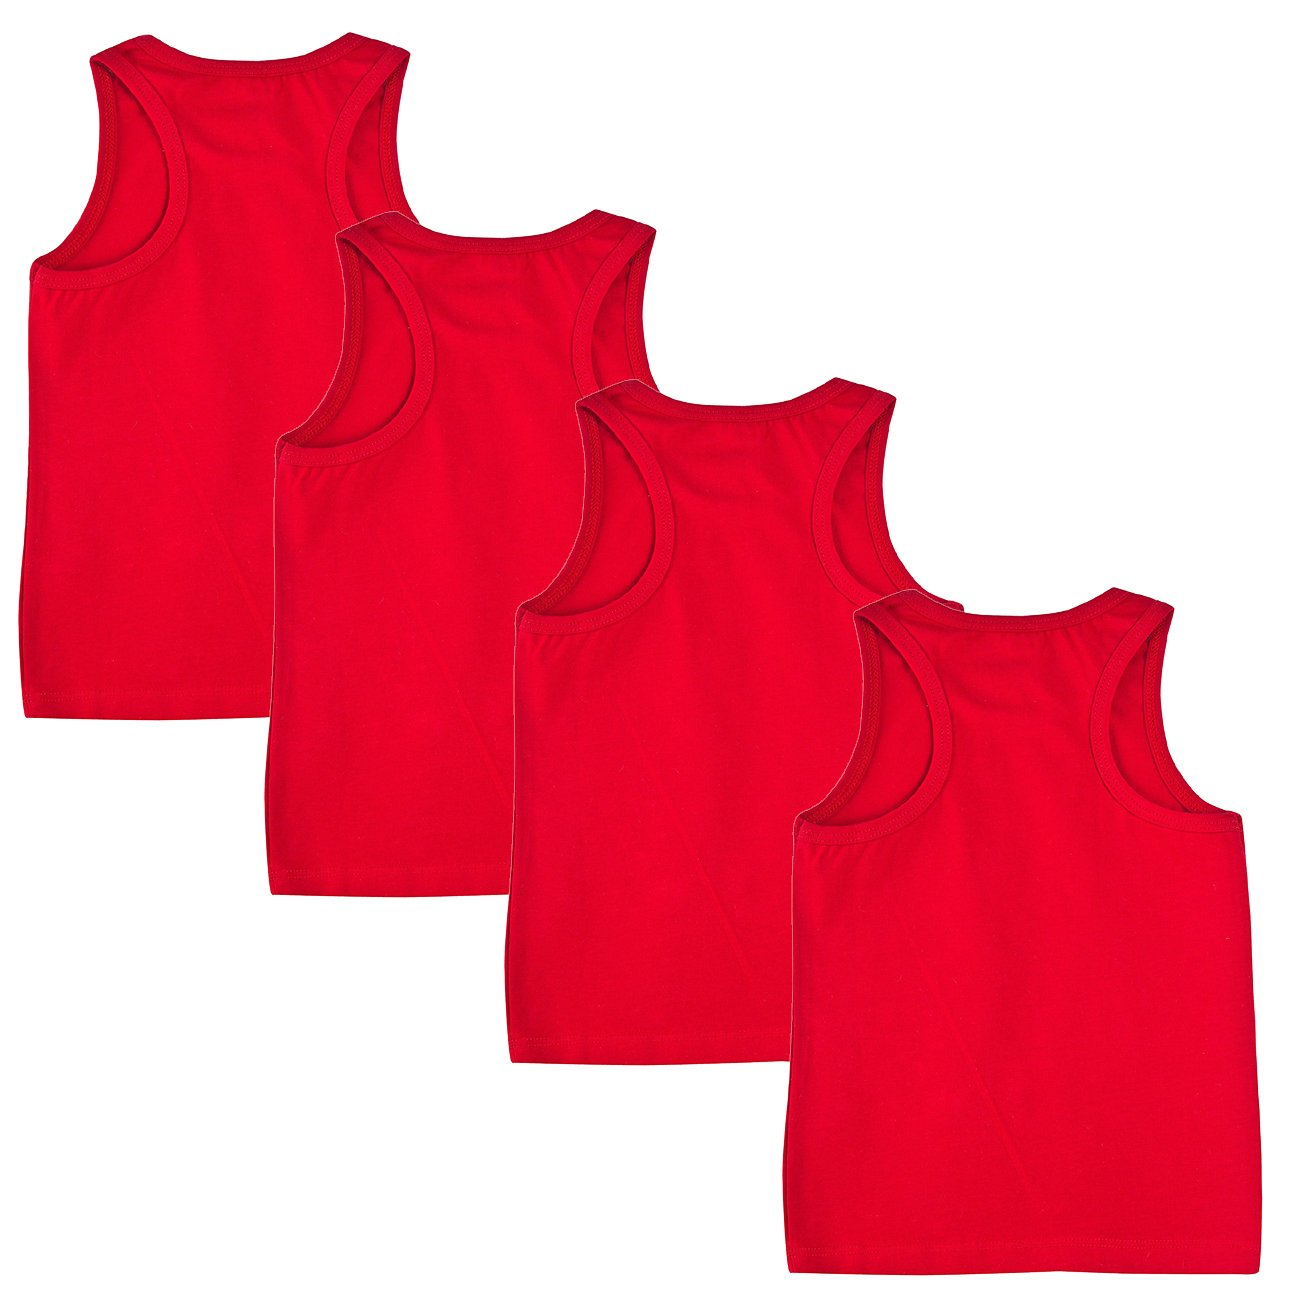 Kids Cotton Tank Top 5 Pk Boys Girls Solid Color Tank Top Children Youth shirts